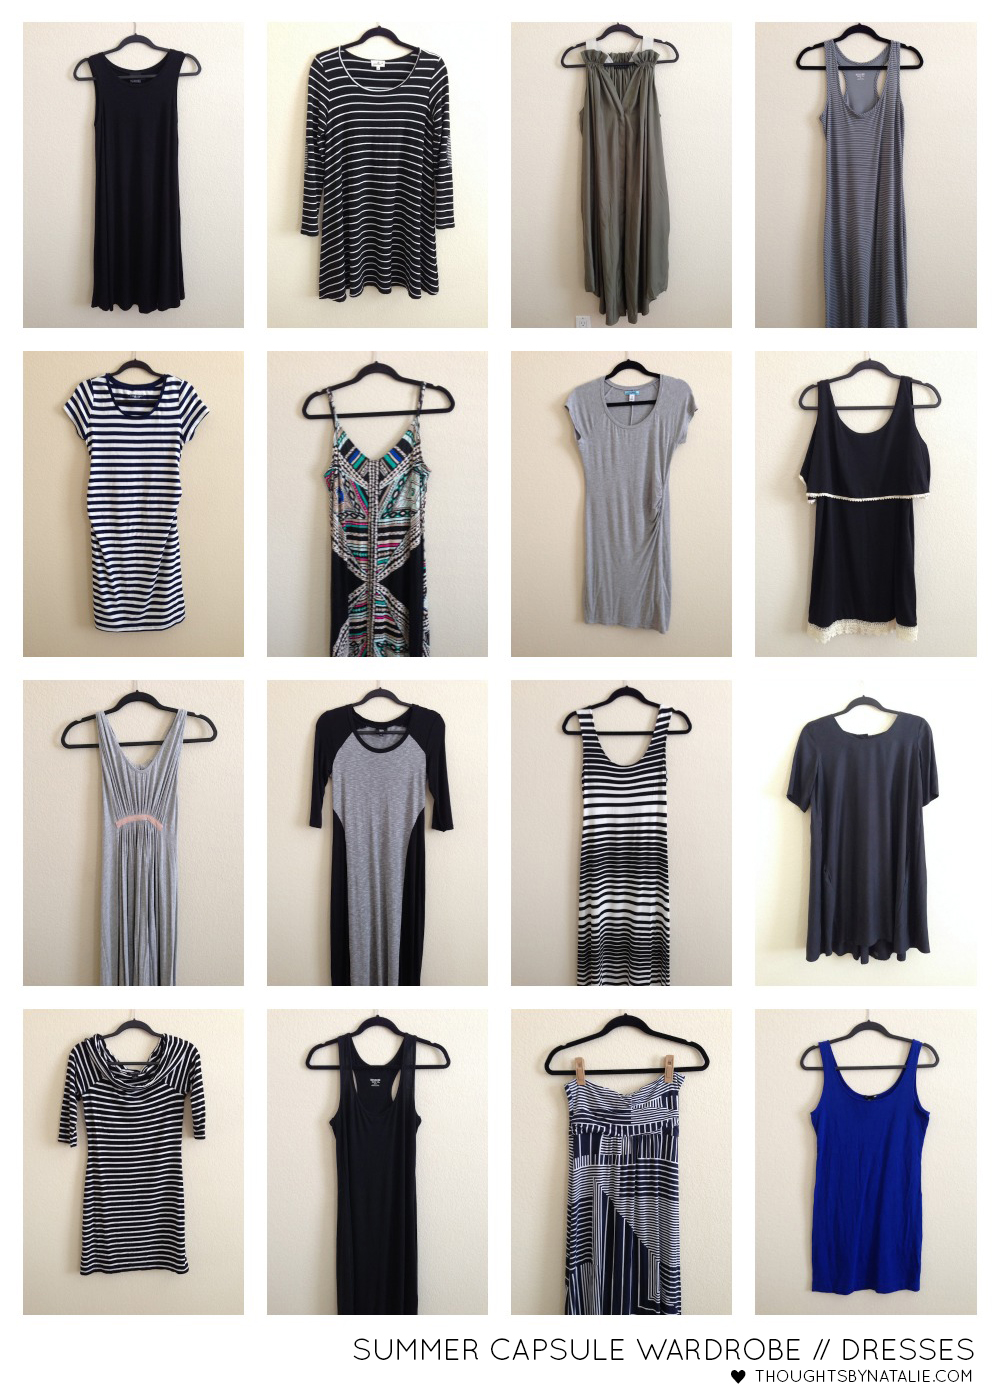 Summer 2014 Capsule Wardrobe   Thoughts By Natalie